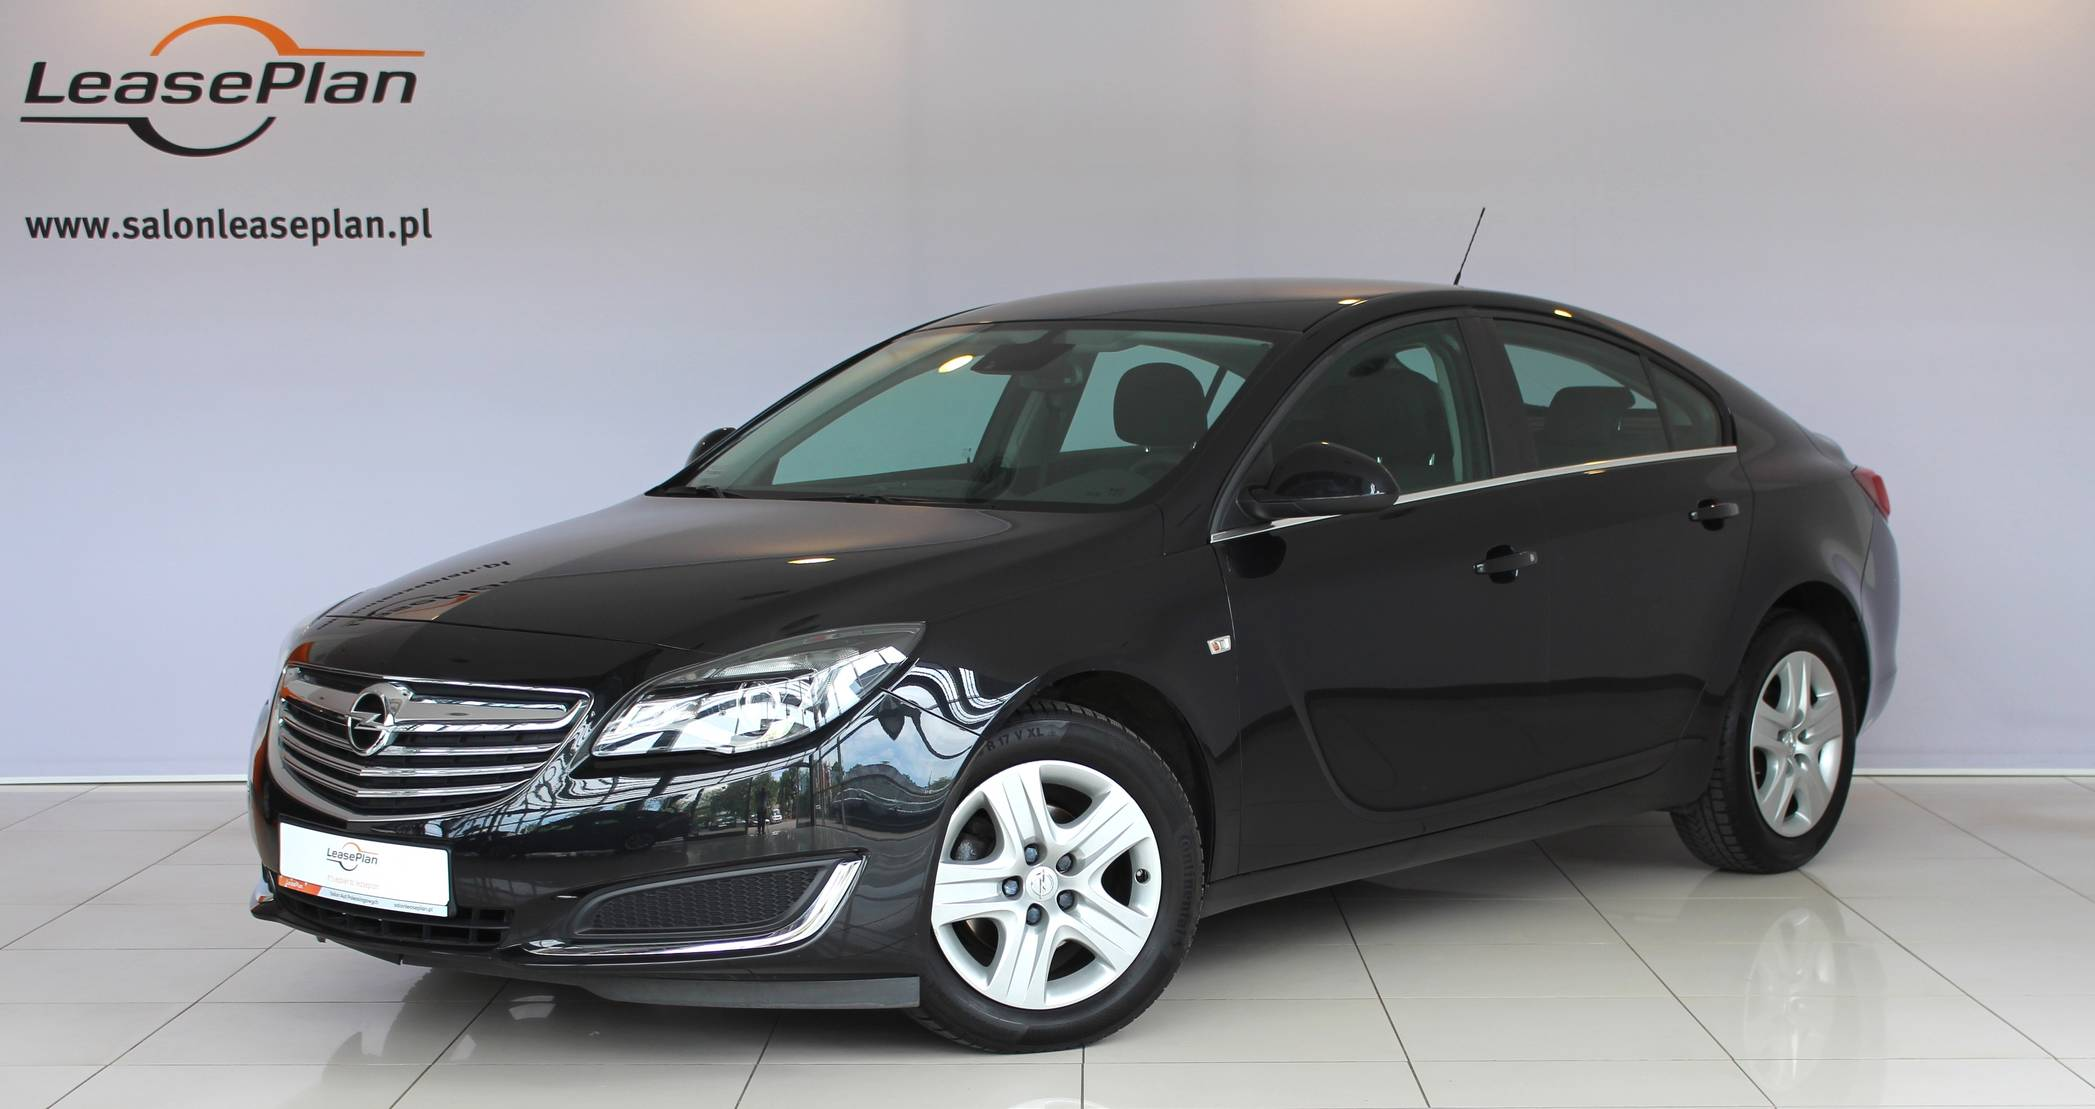 Opel Insignia 2.0 CDTI Aut., Business Edition detail1